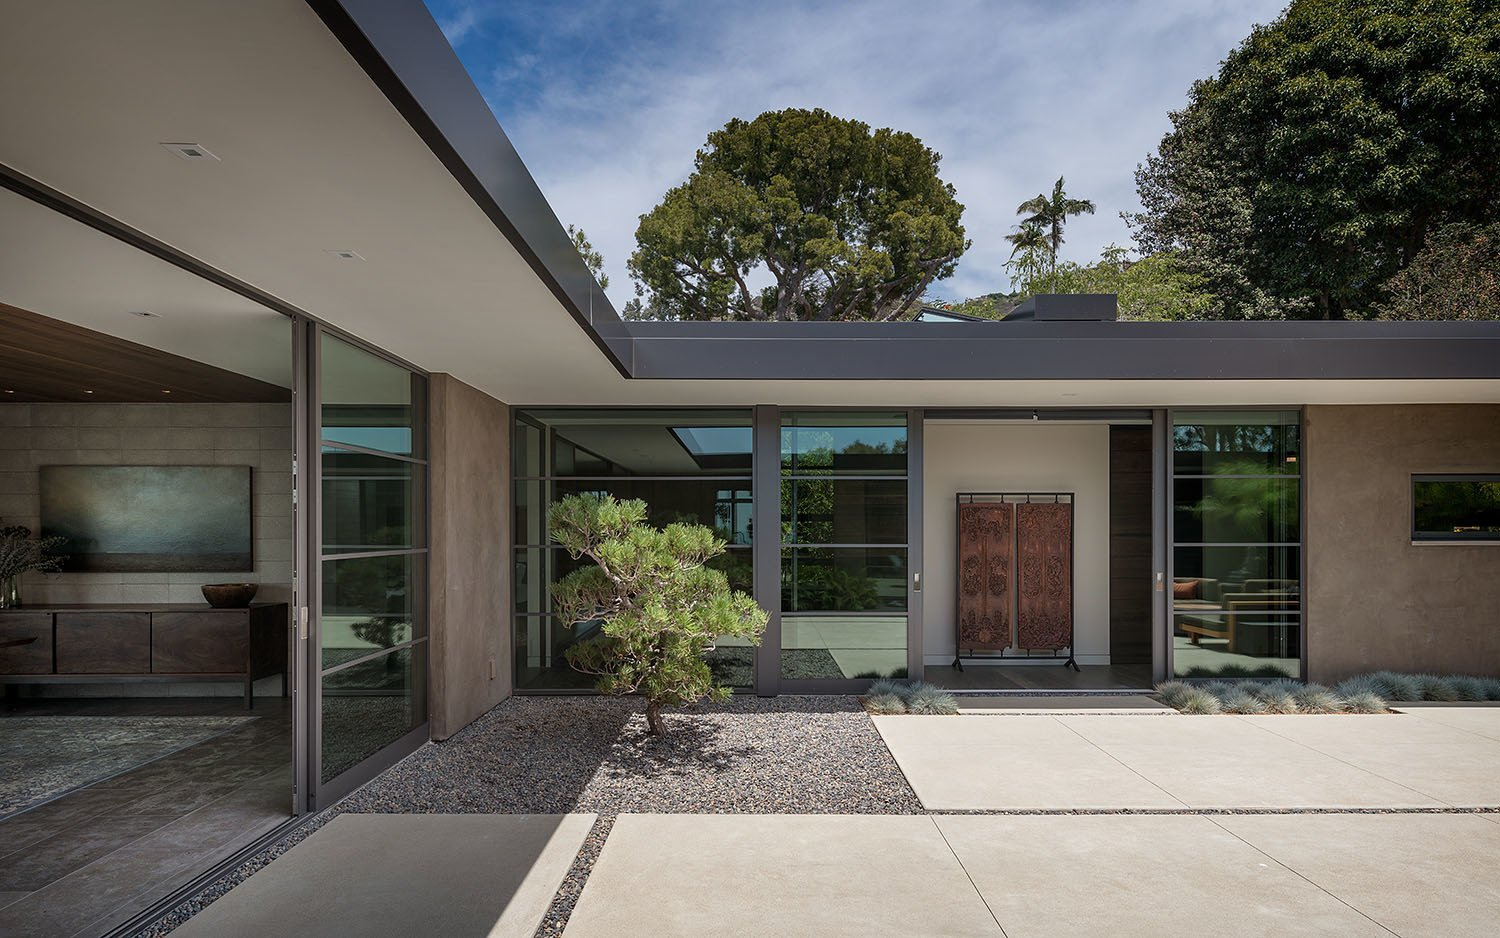 Exterior, House Building Type, Flat RoofLine, Mid-Century Building Type, and Concrete Siding Material A quiet moment of light and shadow highlights the home's Japanese influence.  Photo 4 of 23 in A Southern California Midcentury Gets a Serene, Japanese-Inspired Treatment